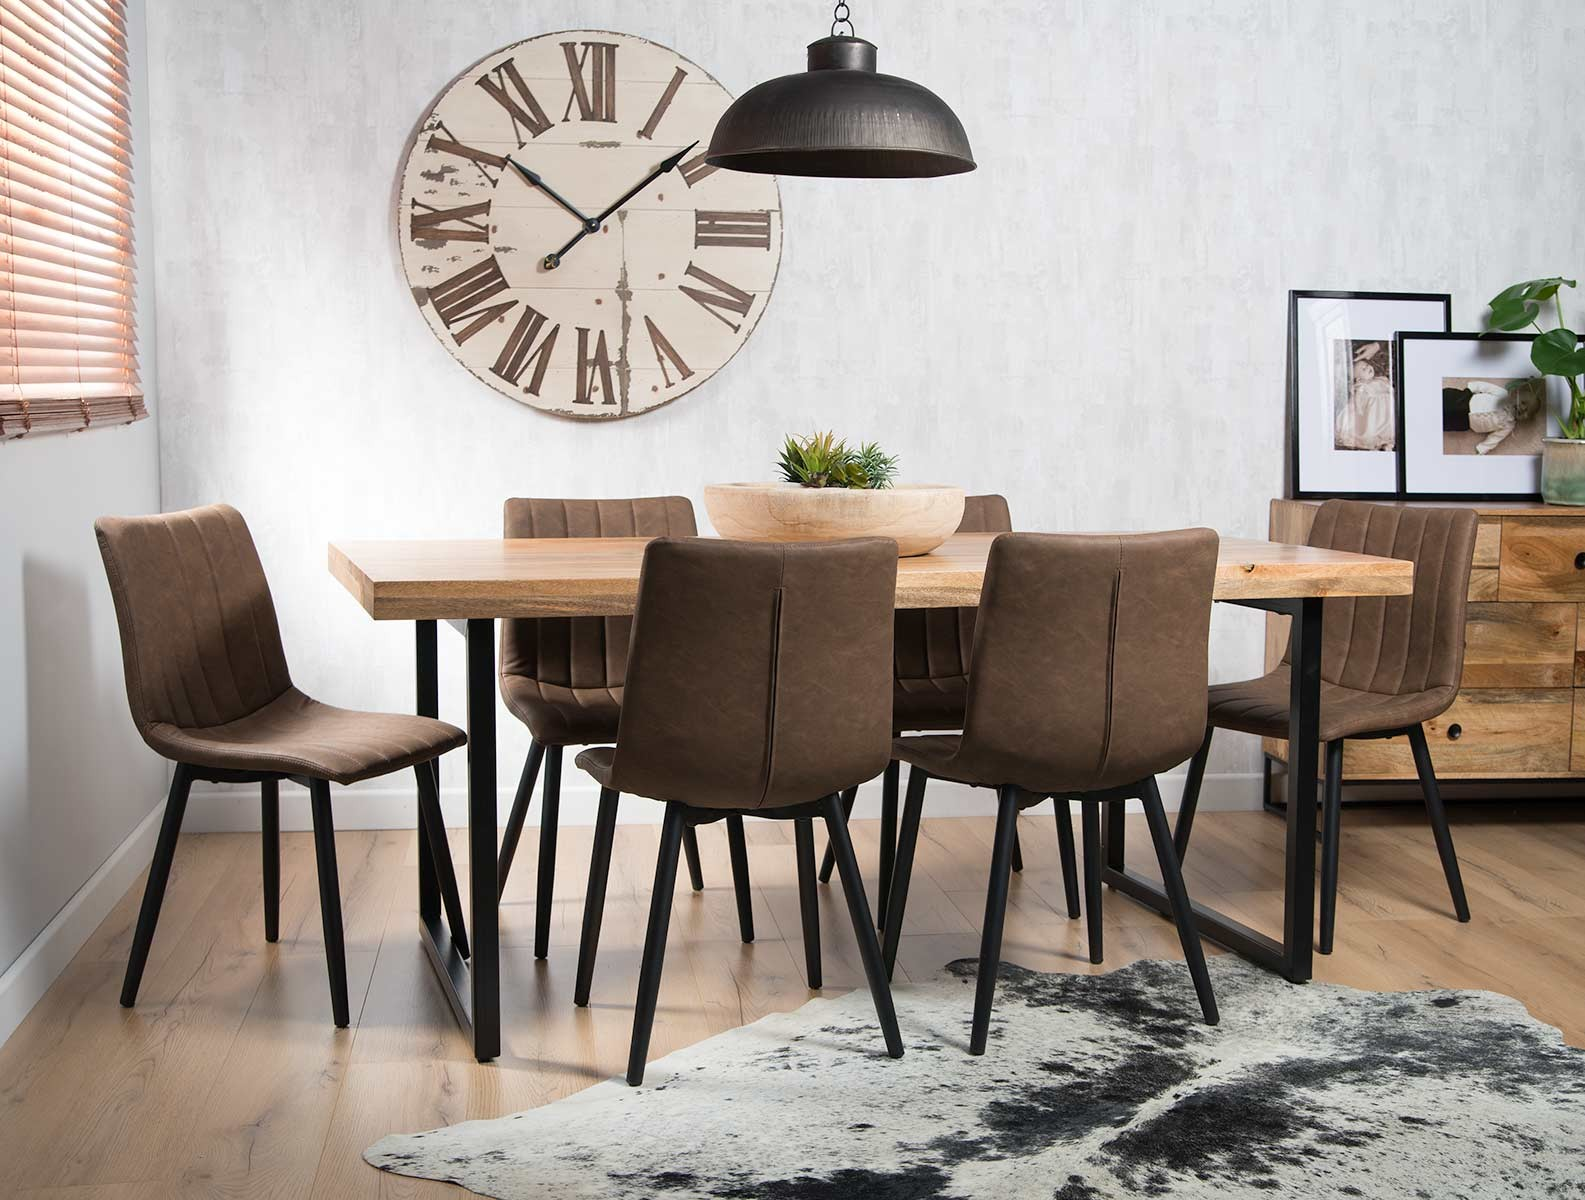 Prime Imari Industrial Mango 6 Seater Dining Set 150Cm Table Arizona Chairs Interior Design Ideas Ghosoteloinfo